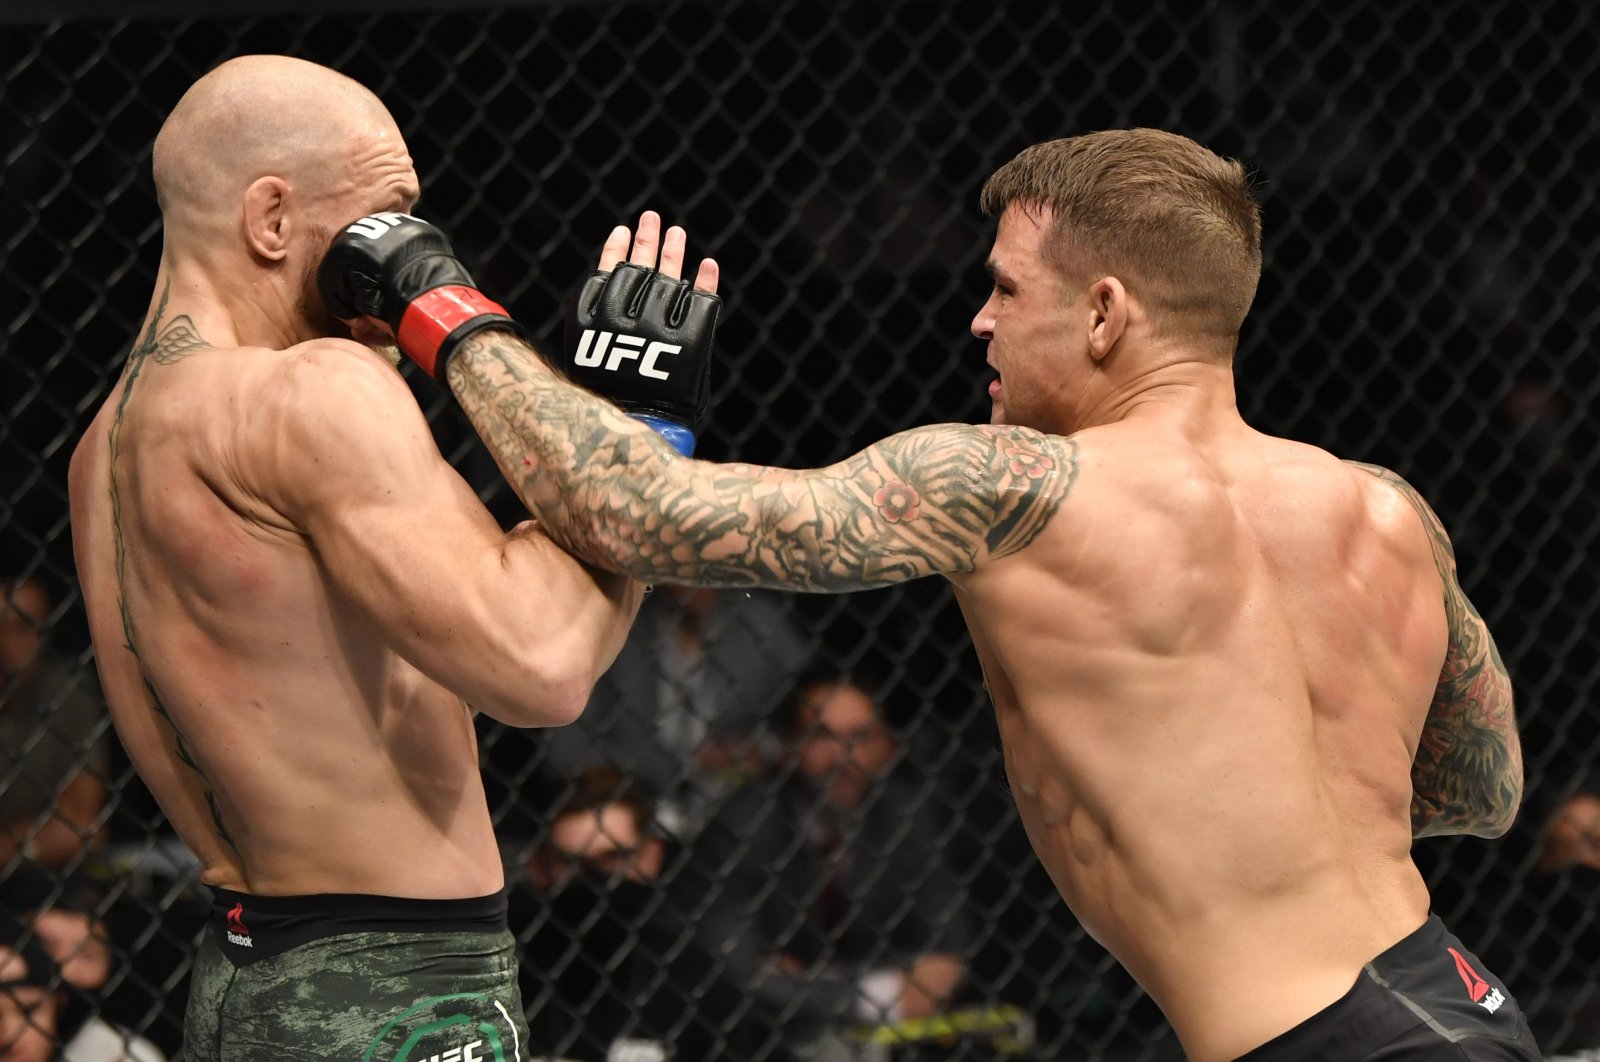 Dustin Poirier punches Conor McGregor in a lightweight fight during the UFC 257 event inside Etihad Arena on UFC Fight Island, Abu Dhabi, UAE, Jan. 23, 2021. (Reuters Photo)